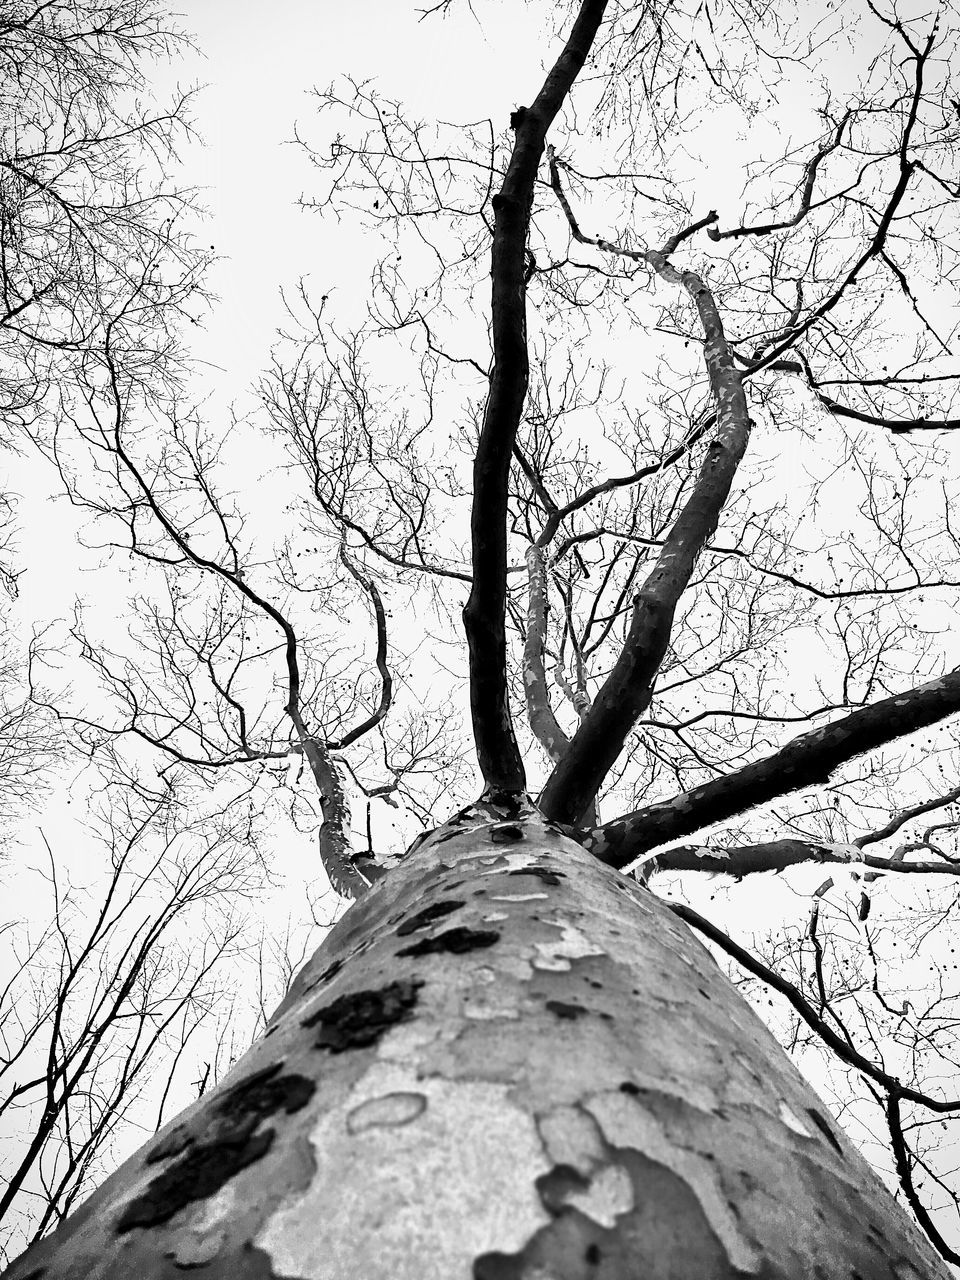 tree, bare tree, branch, tree trunk, low angle view, nature, day, outdoors, no people, beauty in nature, sky, dead tree, close-up